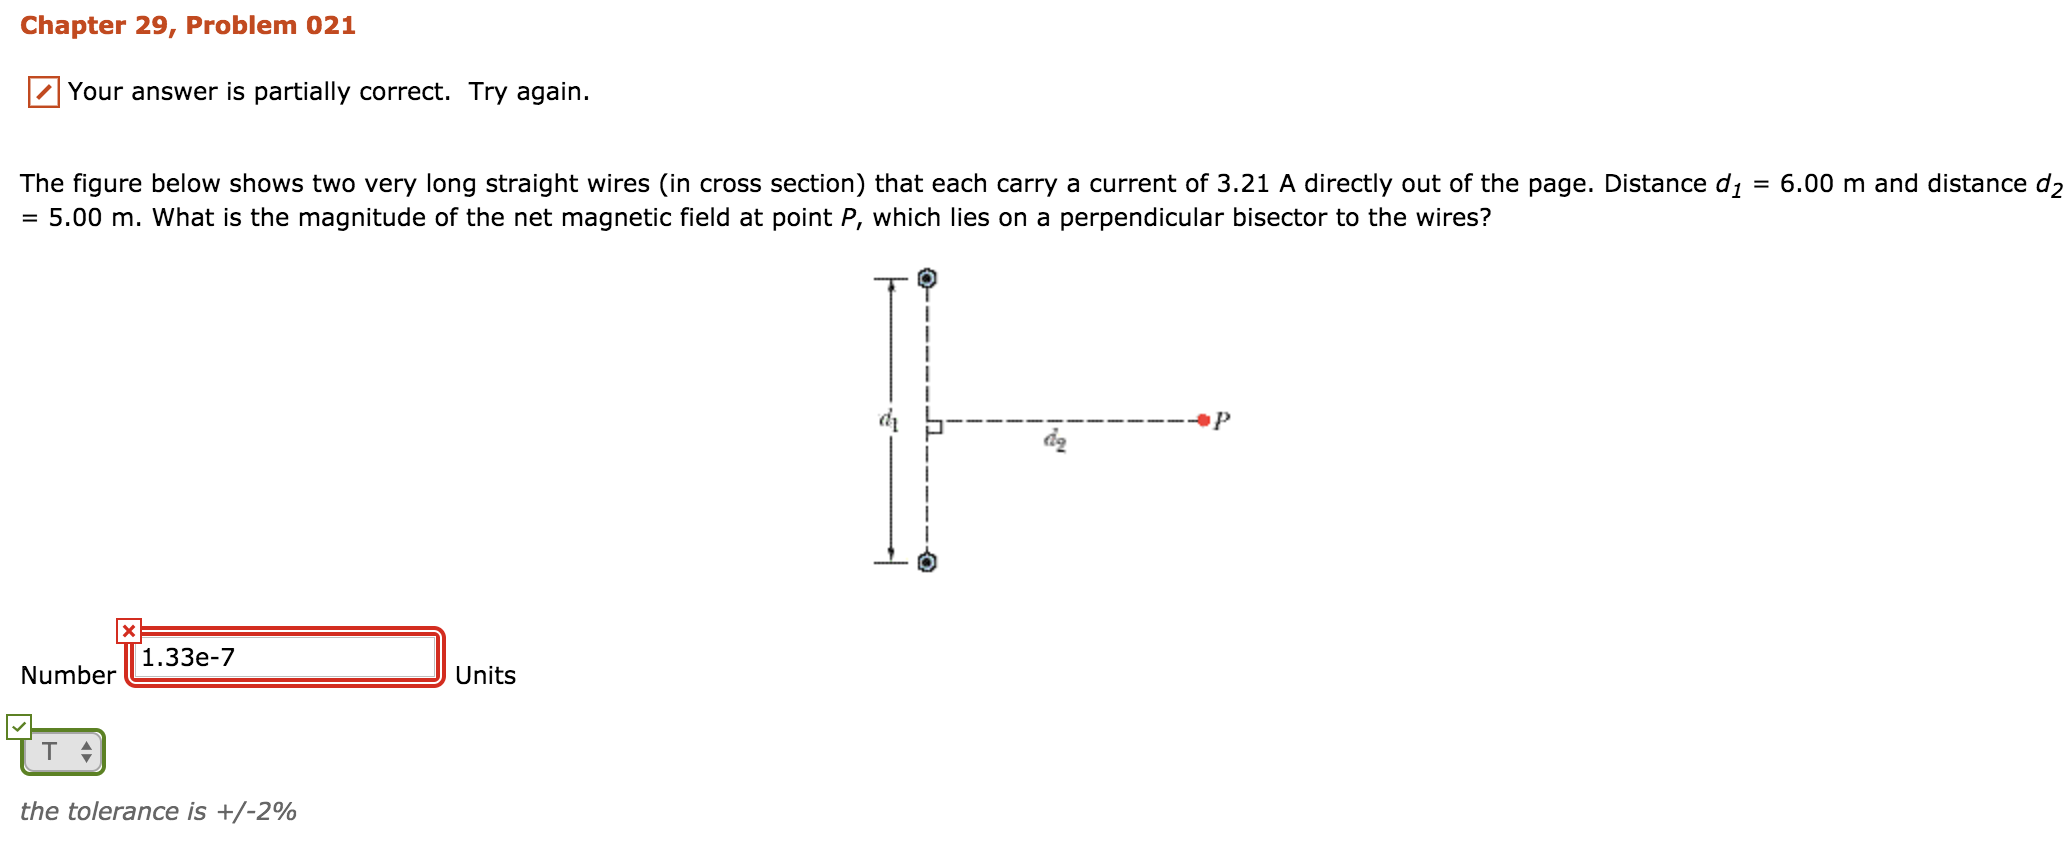 Chapter 29, Problem 021 Your answer is partially correct. Try again. The figure below shows two very long straight wires (in cross section) that each carry a current of 3.21 A directly out of the page. Distance d1 = 6.00 m and distance d2 5.00 m. what is the magnitude of the net magnetic field at point P, which lies on a perpendicular bisector to the wires? 由 Number 1.33e-7 Units the tolerance is +/-2%